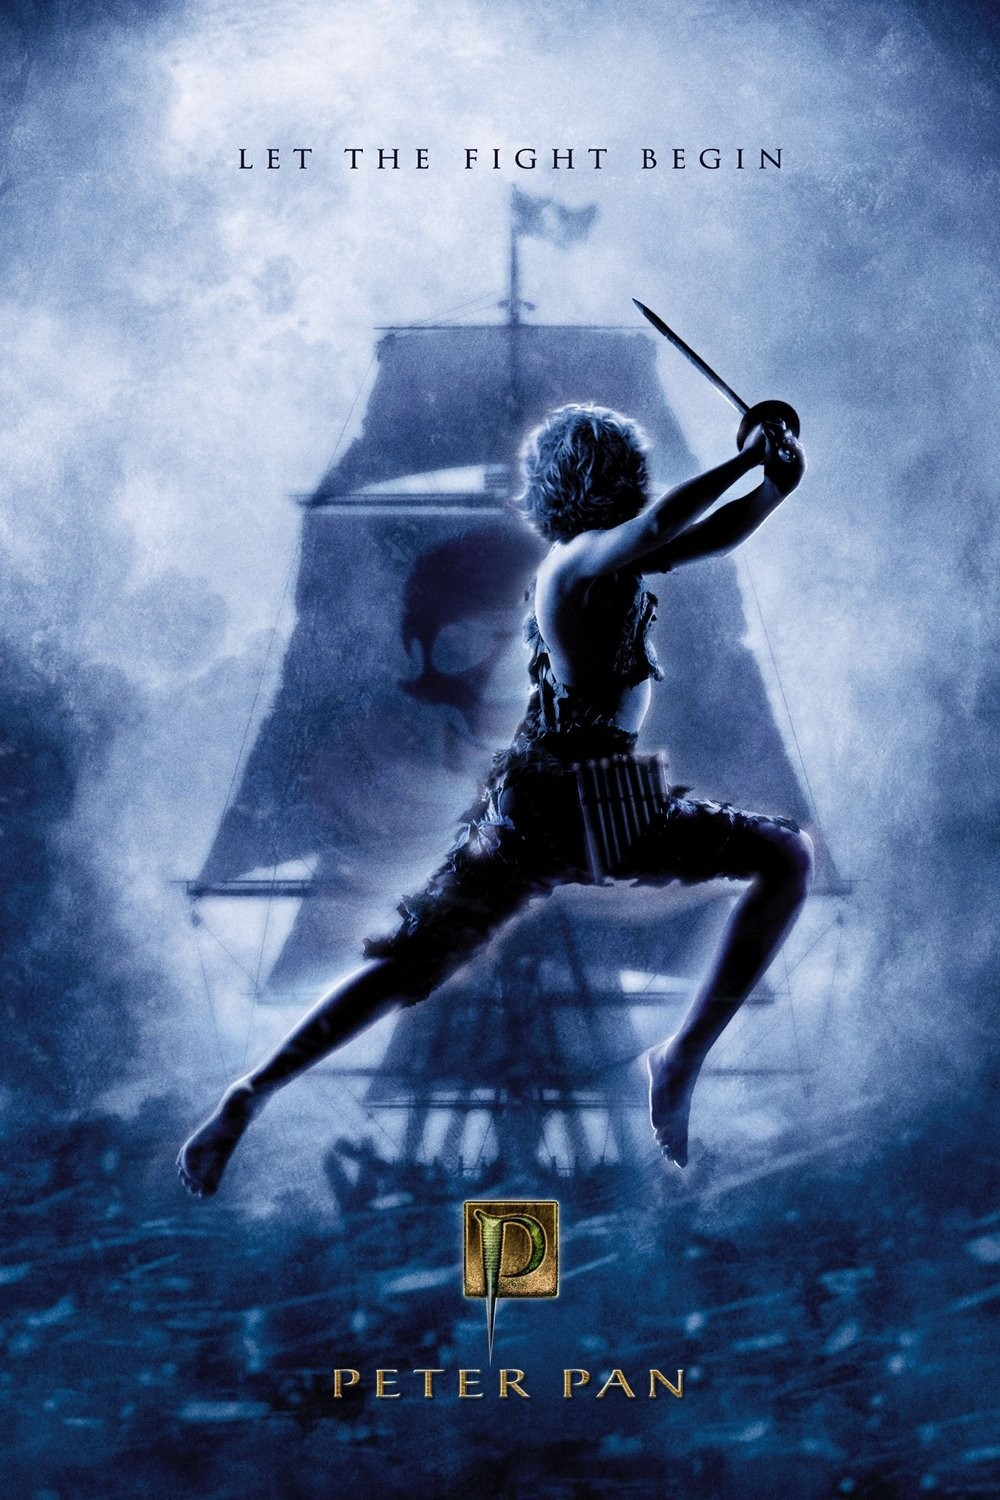 Peter_Pan_2003_movie_poster